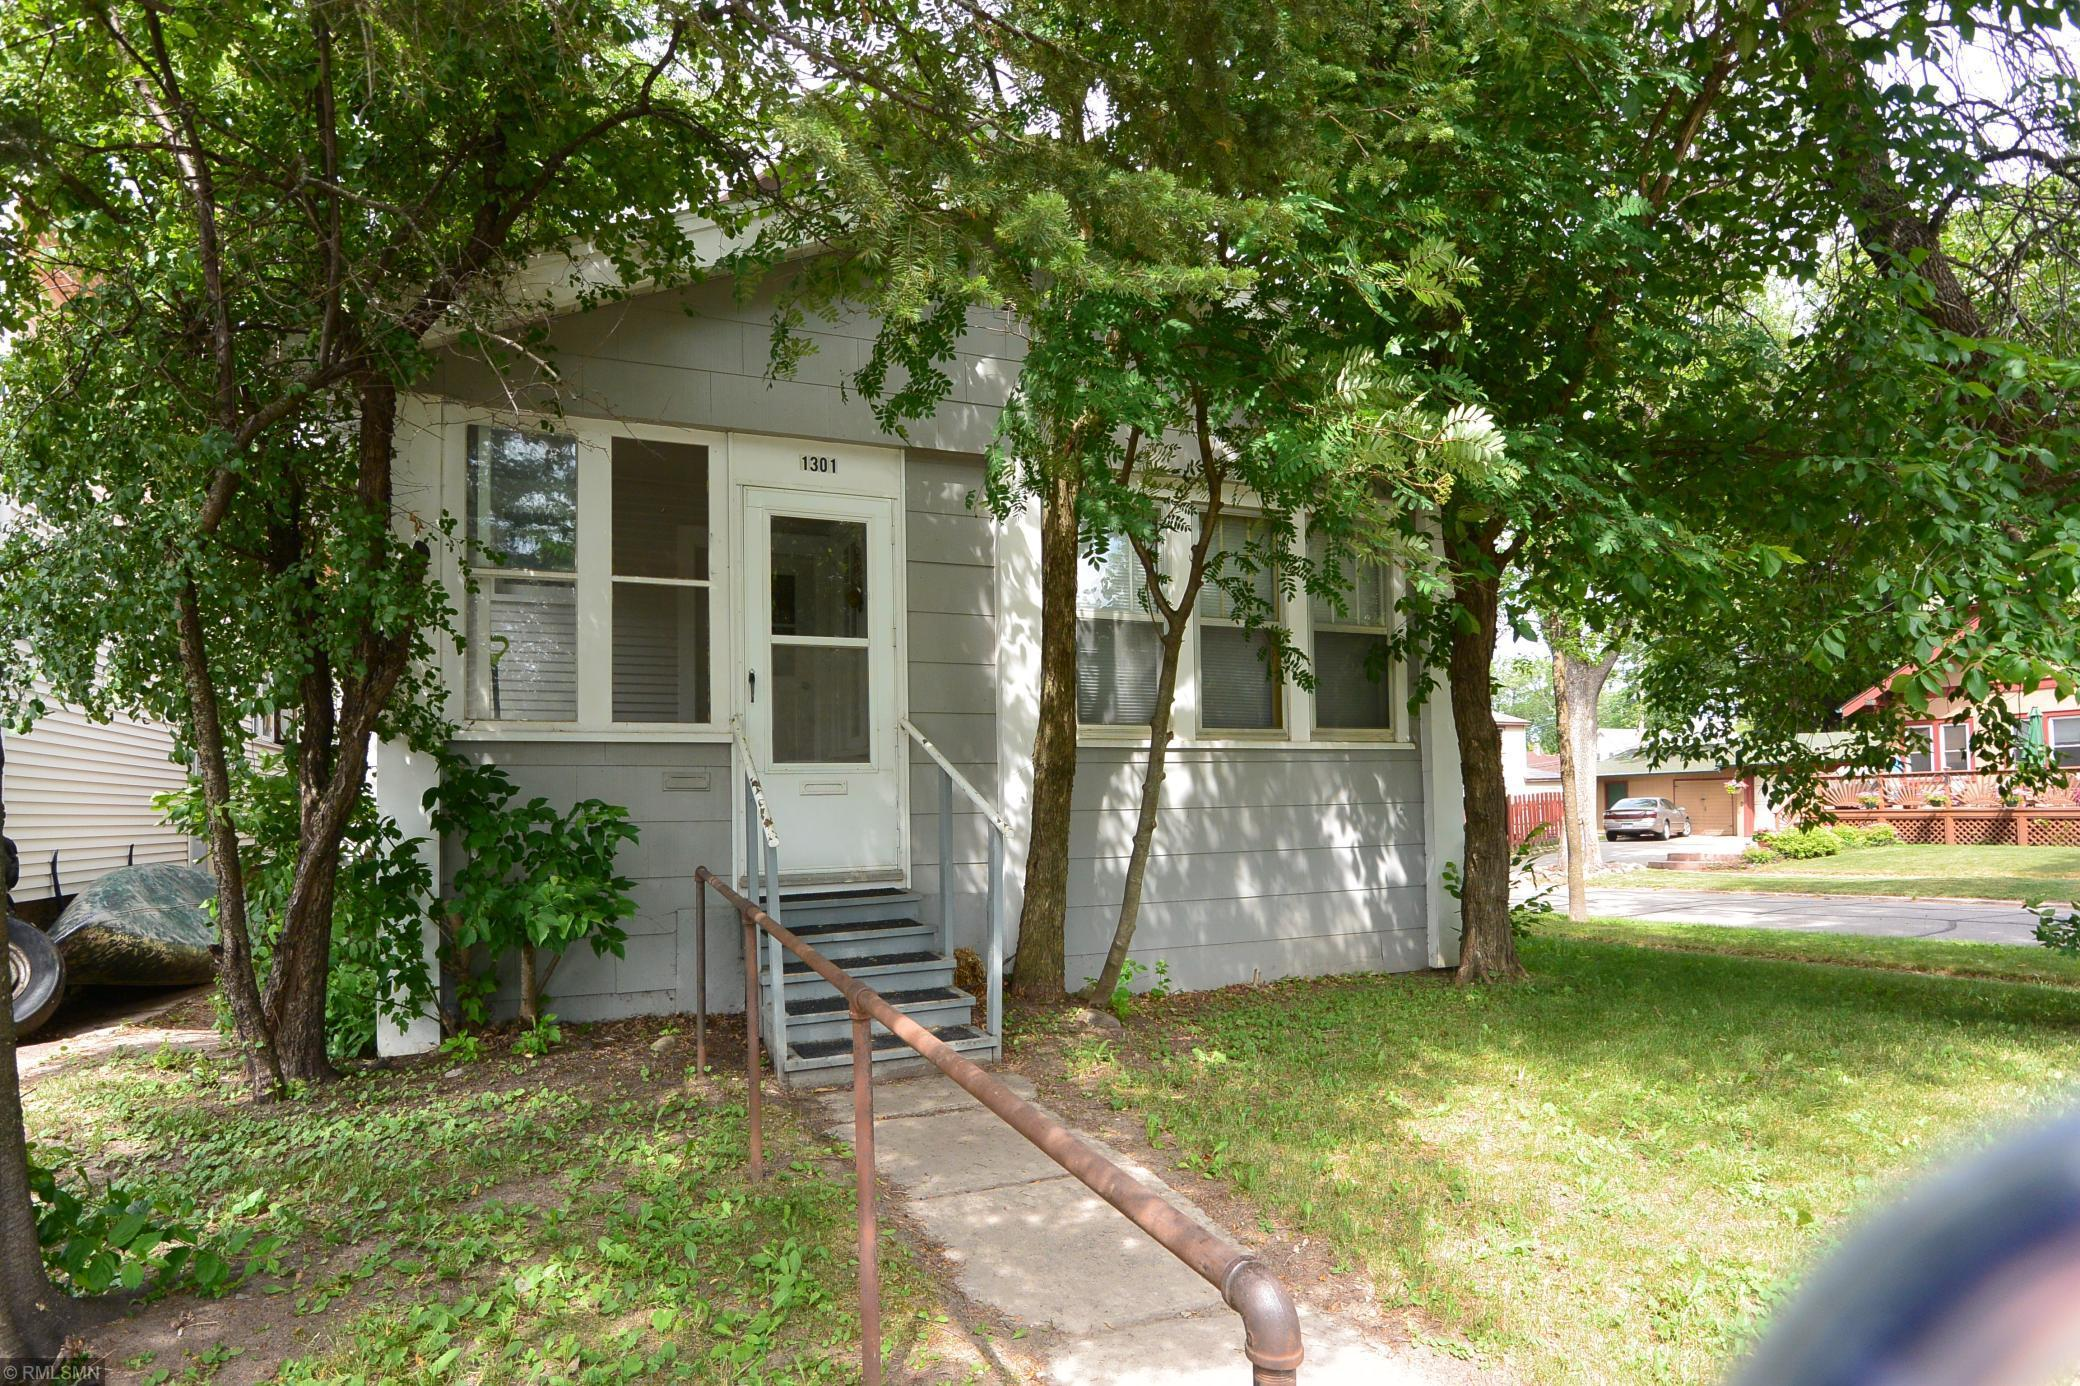 1301 5th Property Photo - Virginia, MN real estate listing